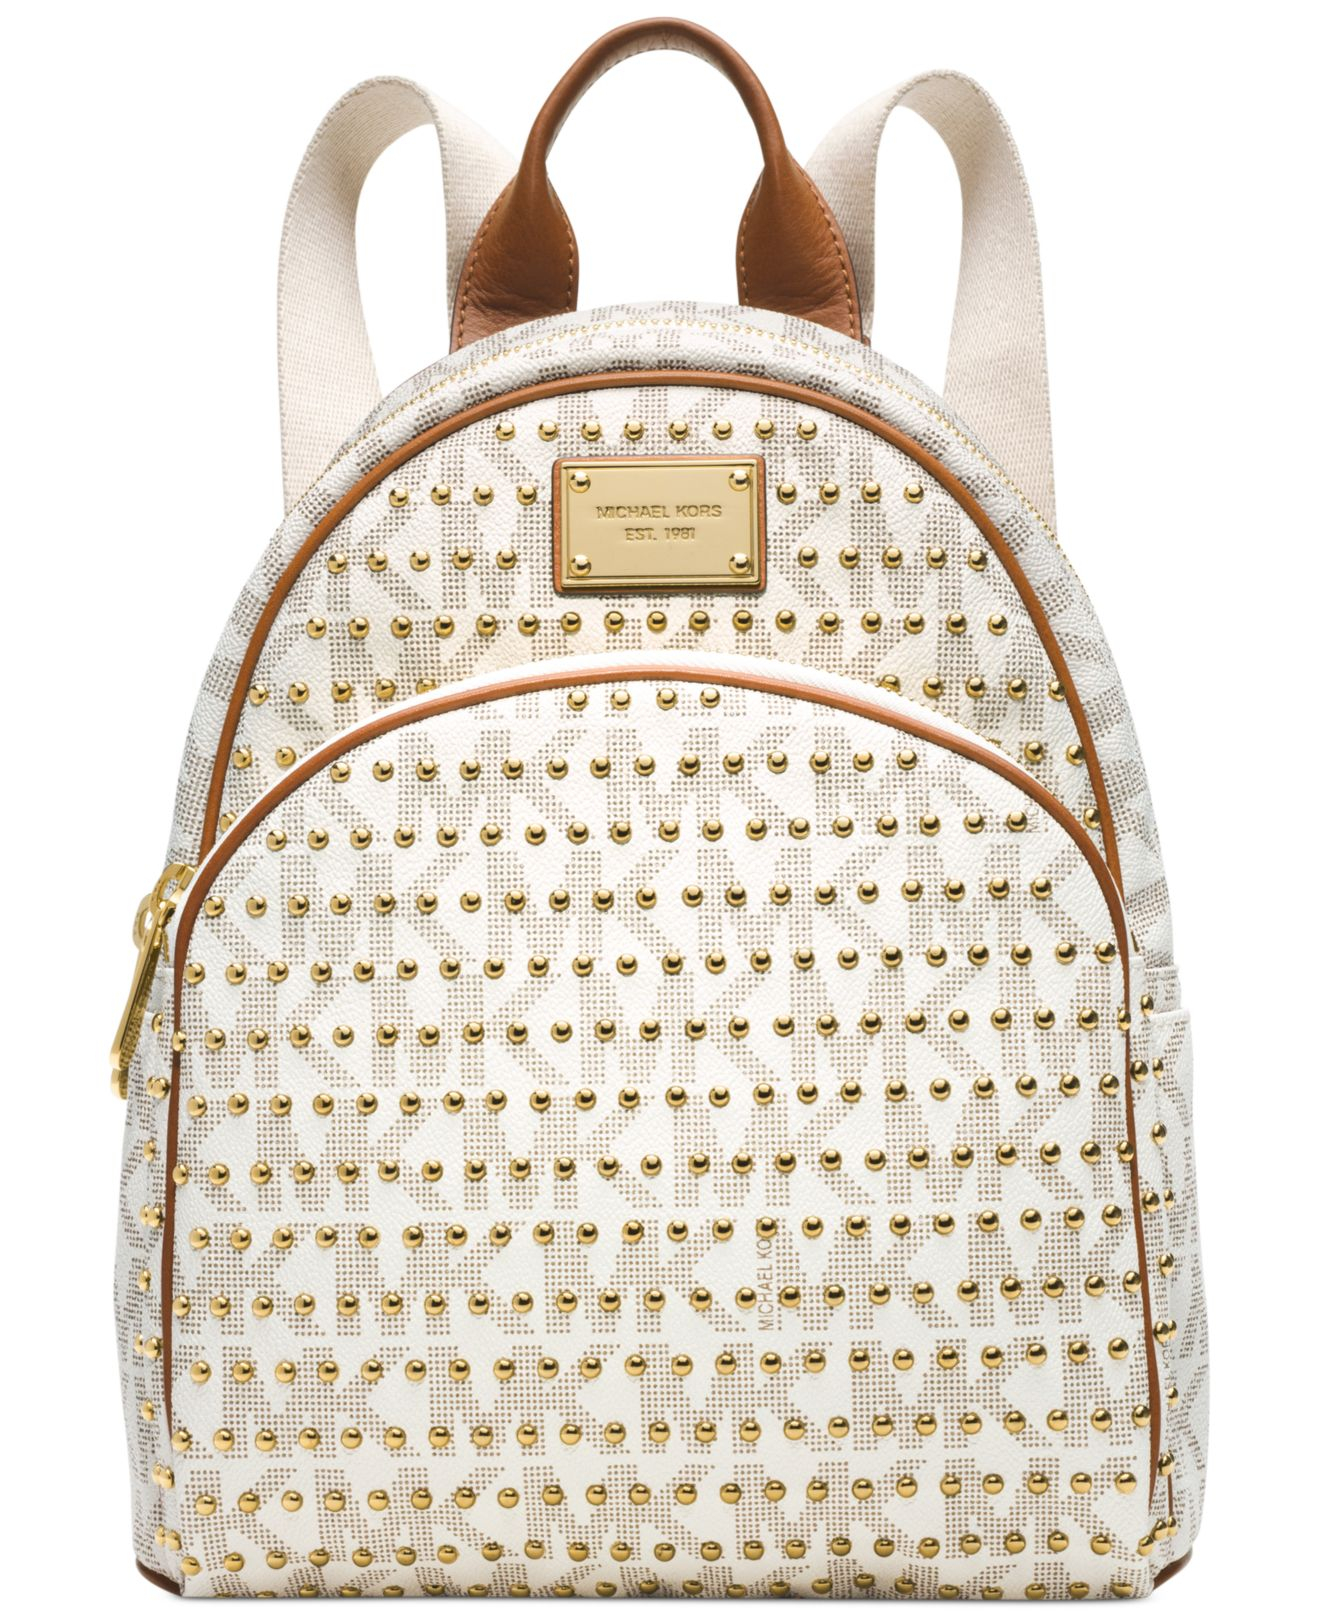 928027ed9b4d Lyst - Michael Kors Jet Set Travel Small Studded Logo Backpack in ...